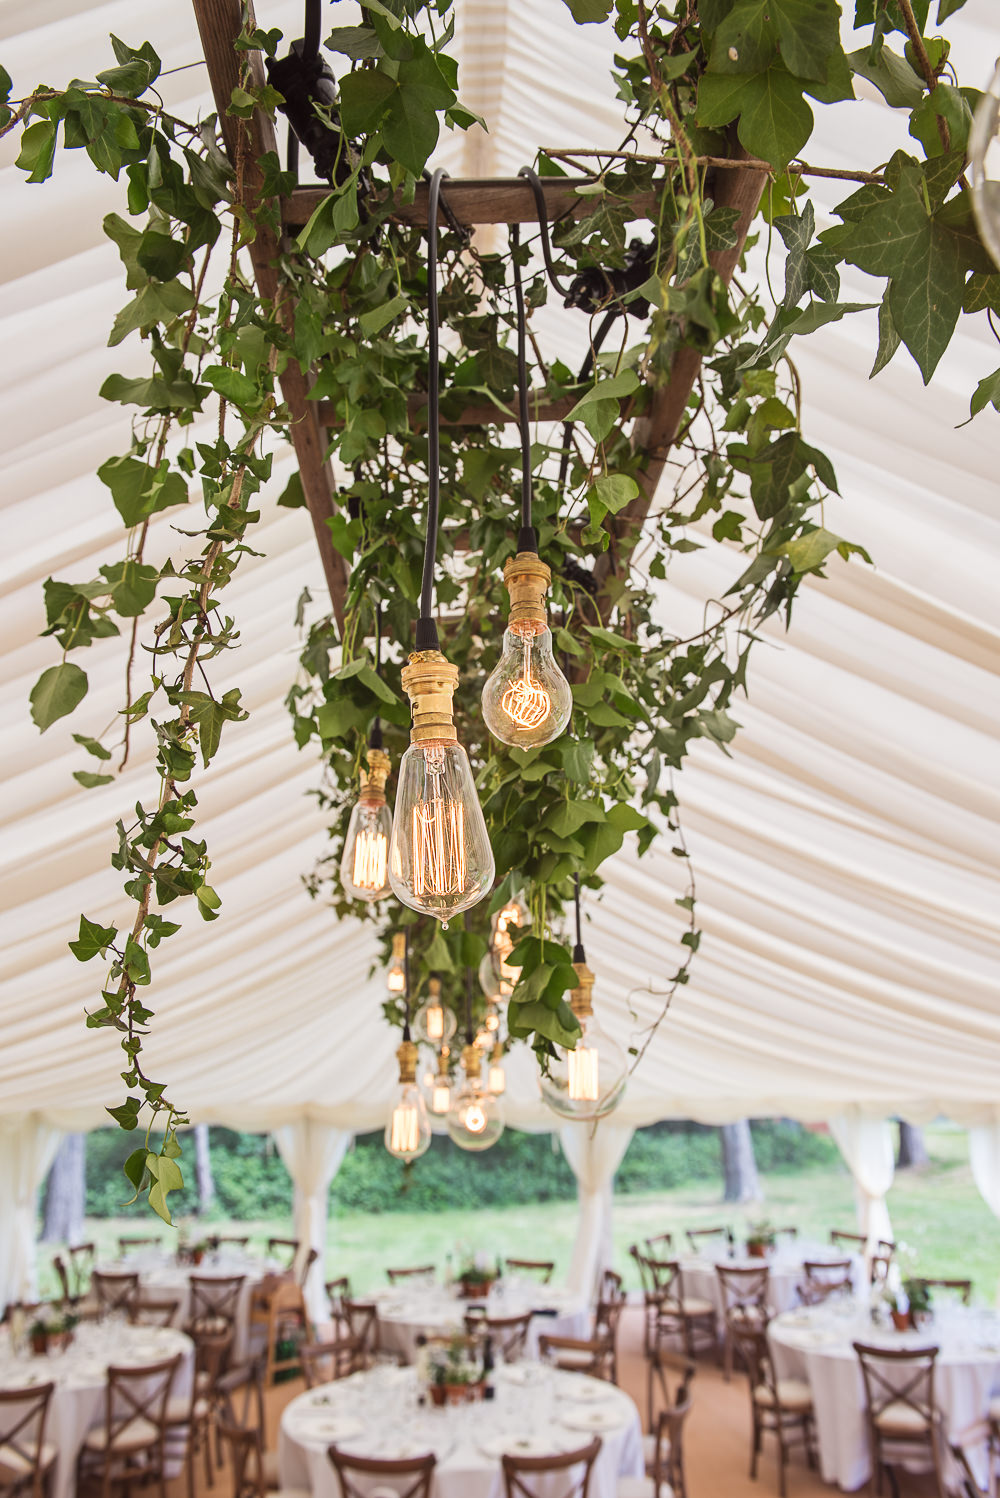 Marquee Decor Hanging Suspended Flowers Greenery Lights Lighting Sopley Lake Wedding One Thousand Words